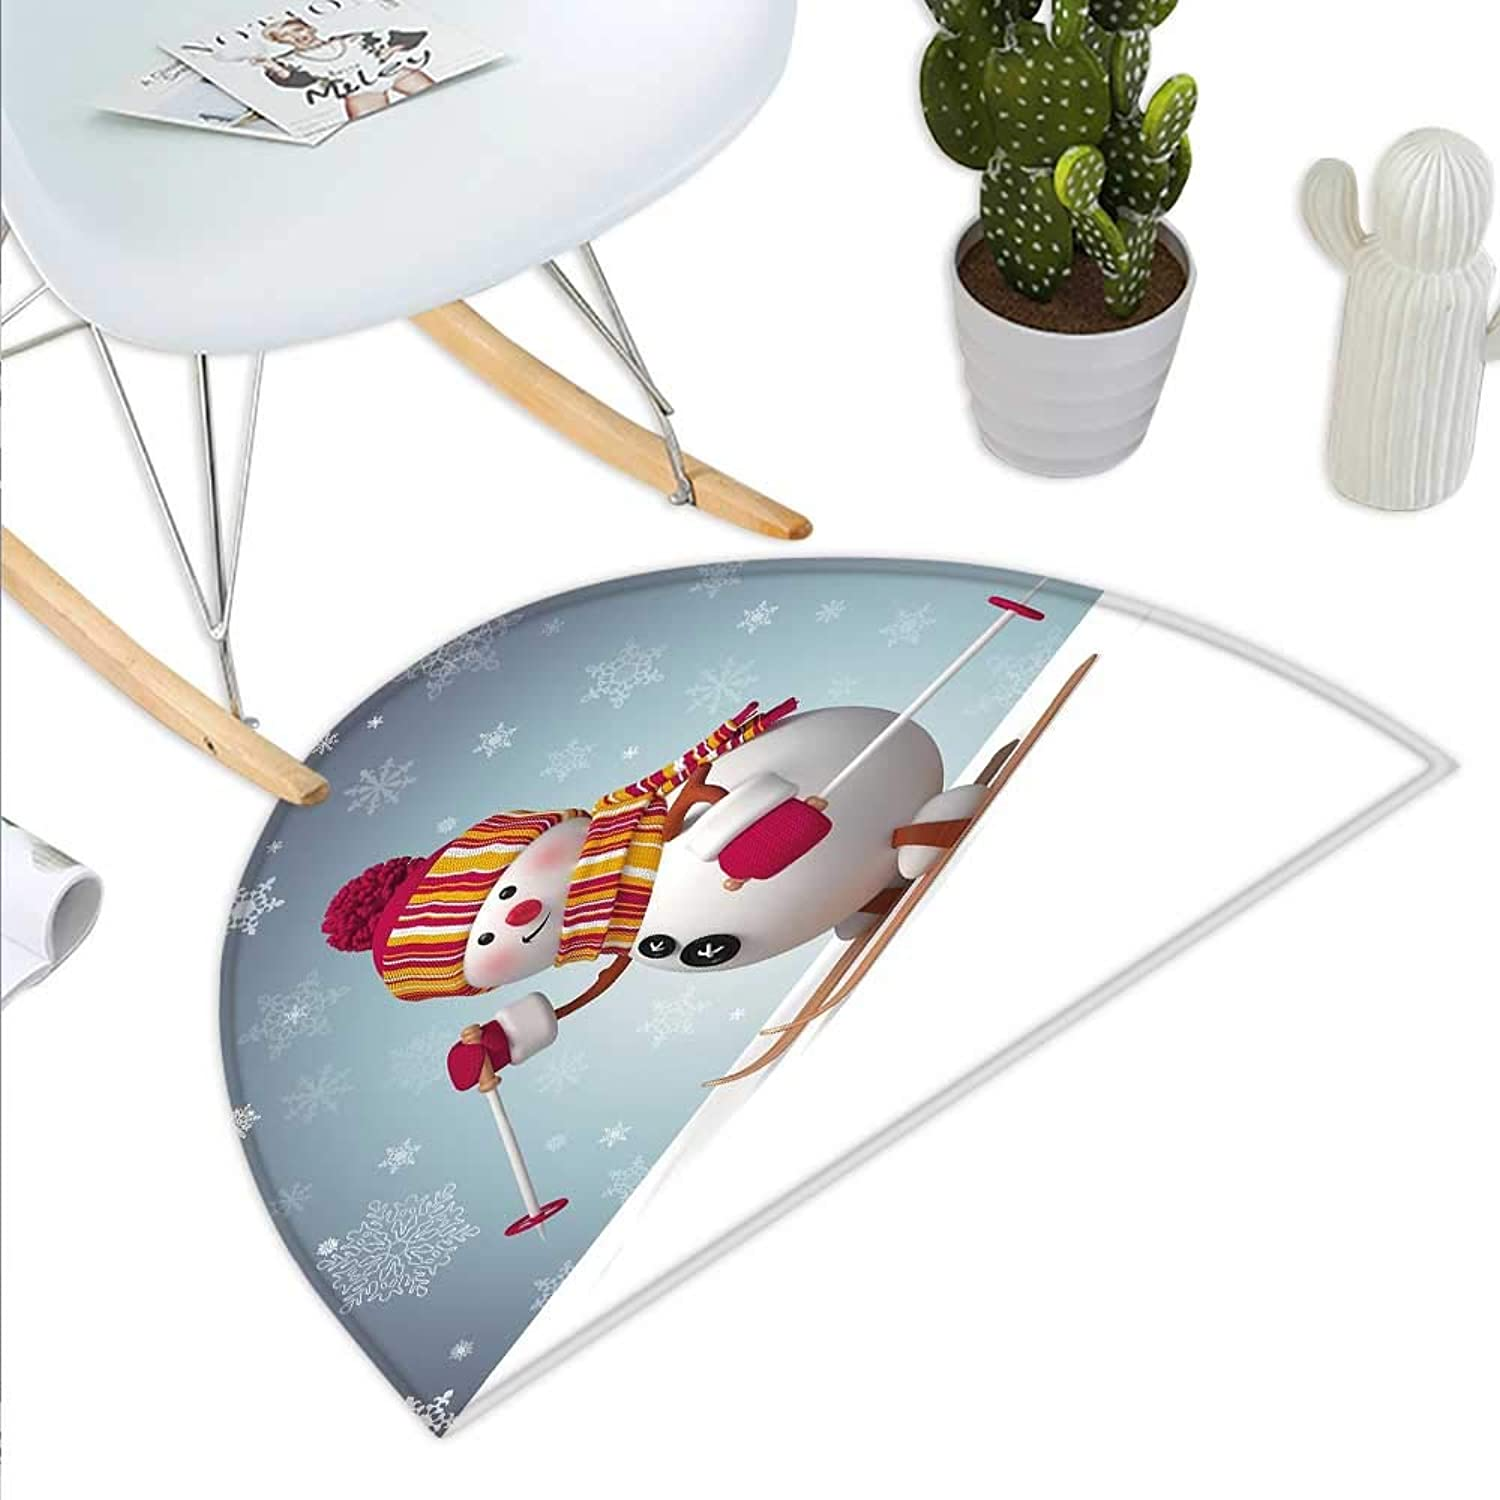 Snowman Semicircle Doormat Skiing Snowman in 3D Style with Ornate Snowflakes Winter Outdoors Activity Fun Halfmoon doormats H 35.4  xD 53.1  Multicolor